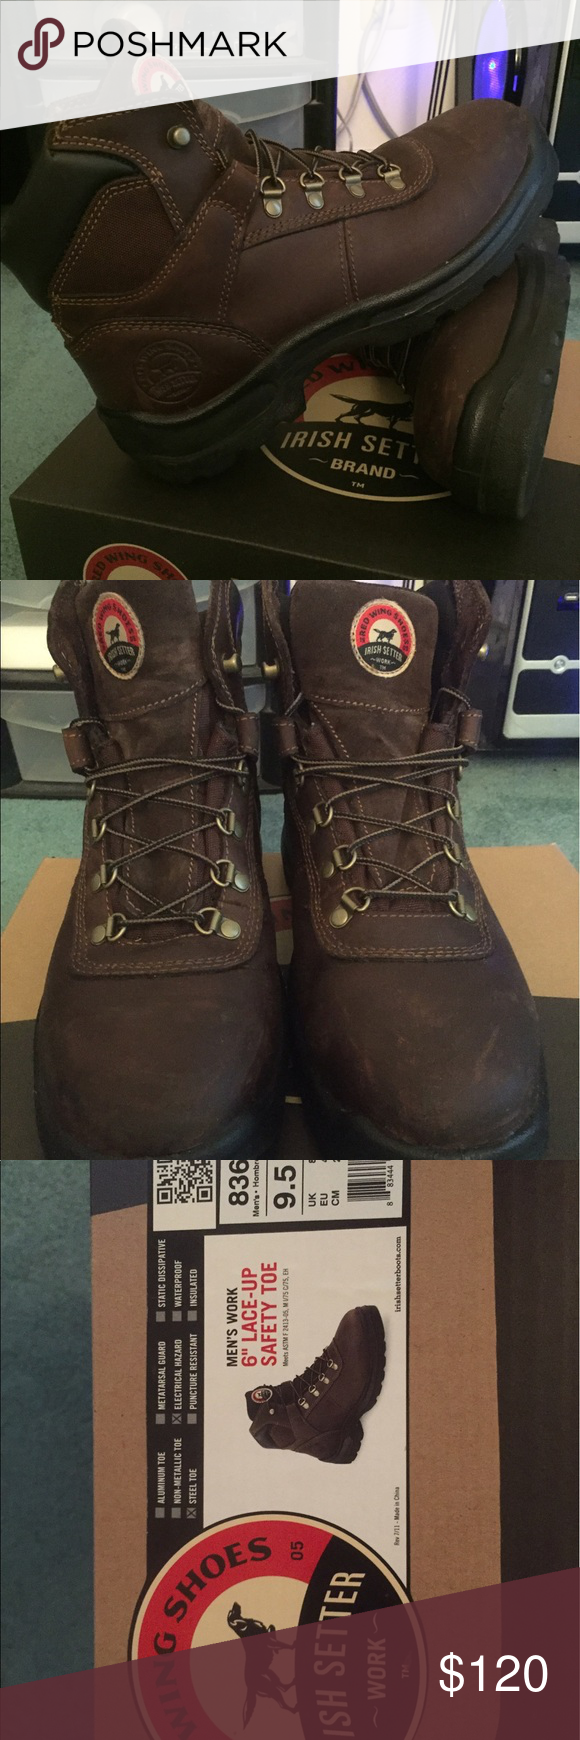 Red Wing Steel Toe Irish Setters Red Wing Steel Toe Irish Setters. Practically new! Red Wing Shoes Shoes Boots